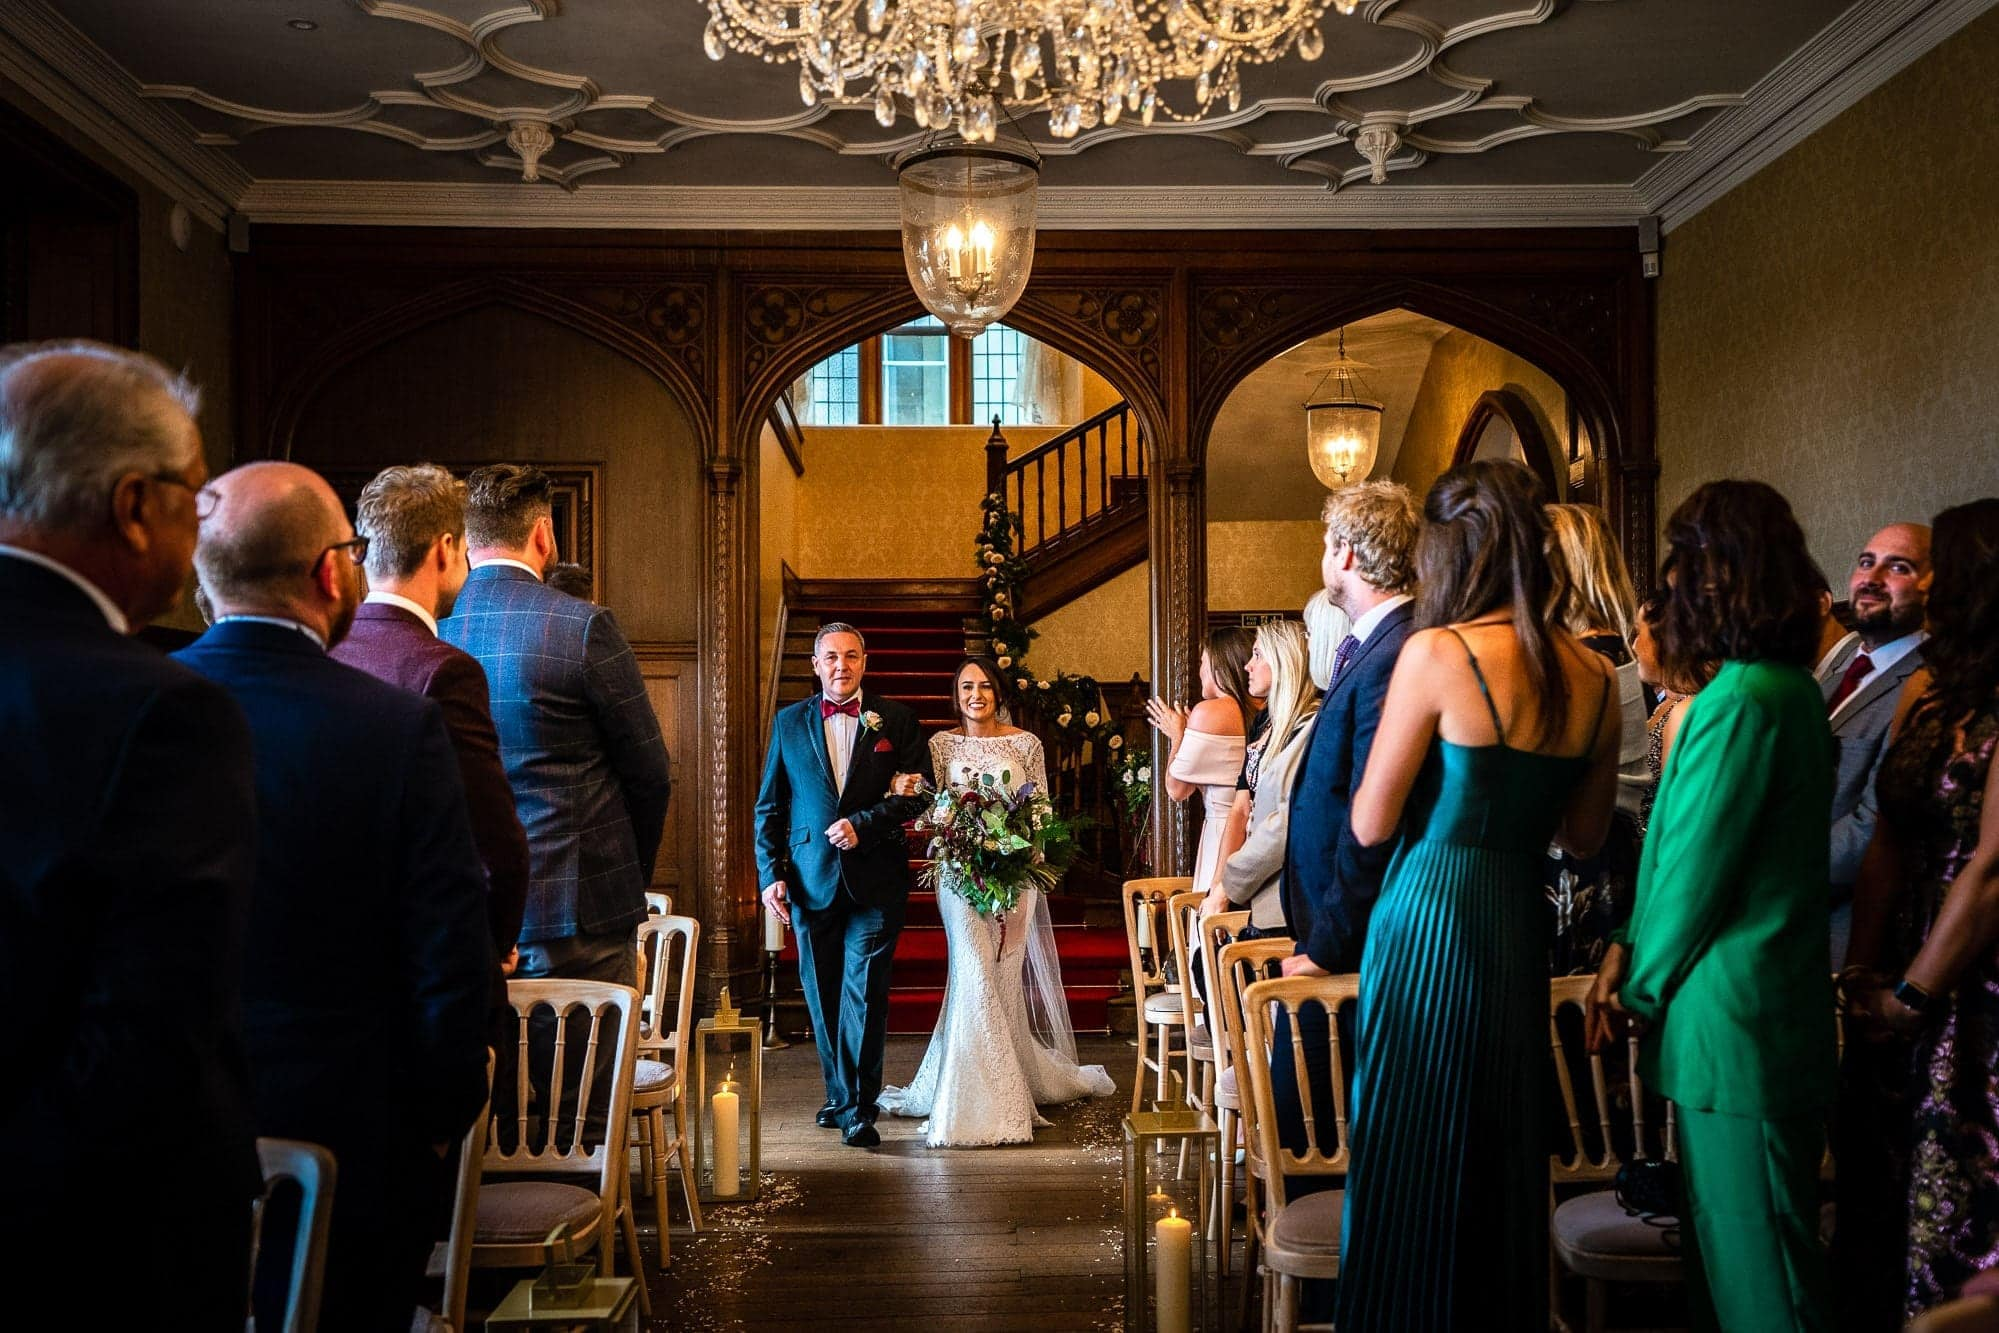 Froyle Park Wedding Photography - Bride walking down aisle with her father